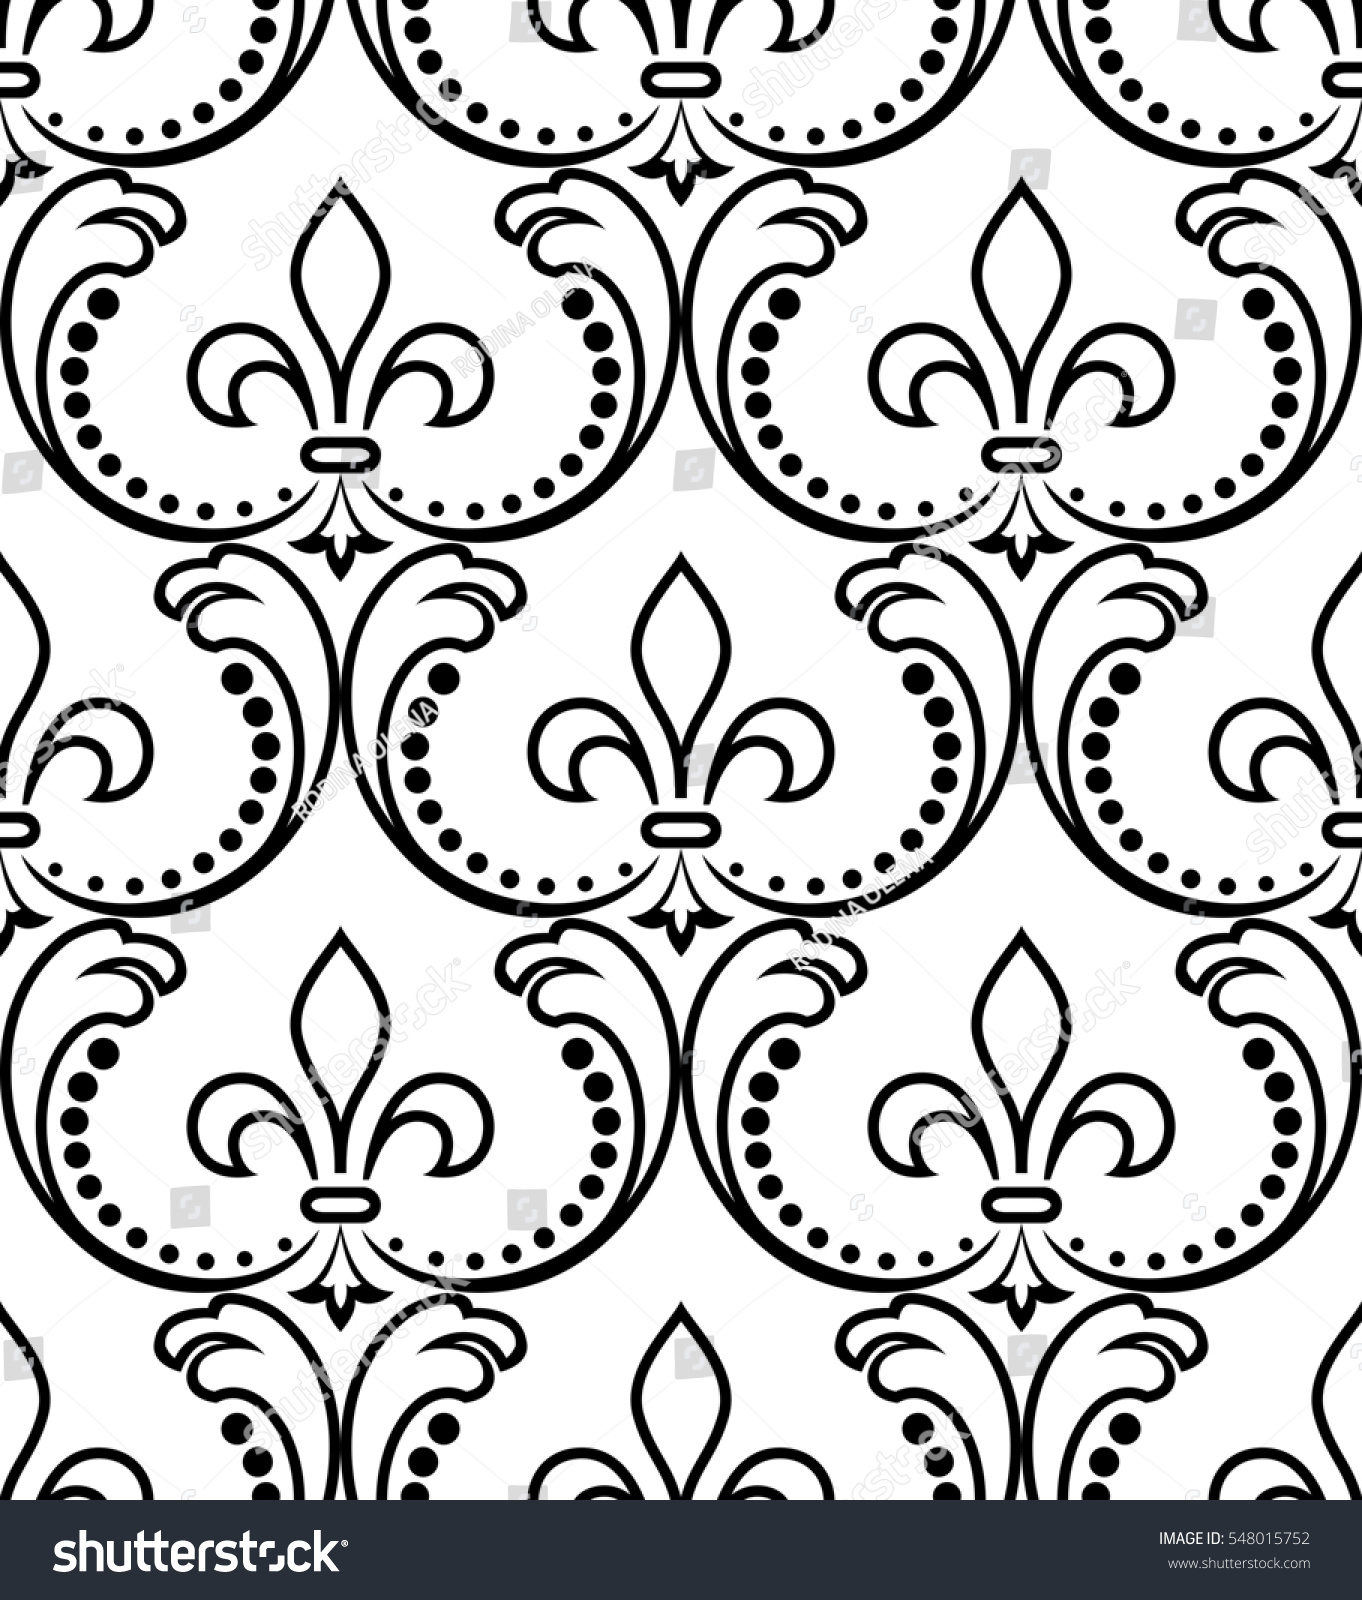 Royal wallpaper. Black flowers on a transparent background. Stylish